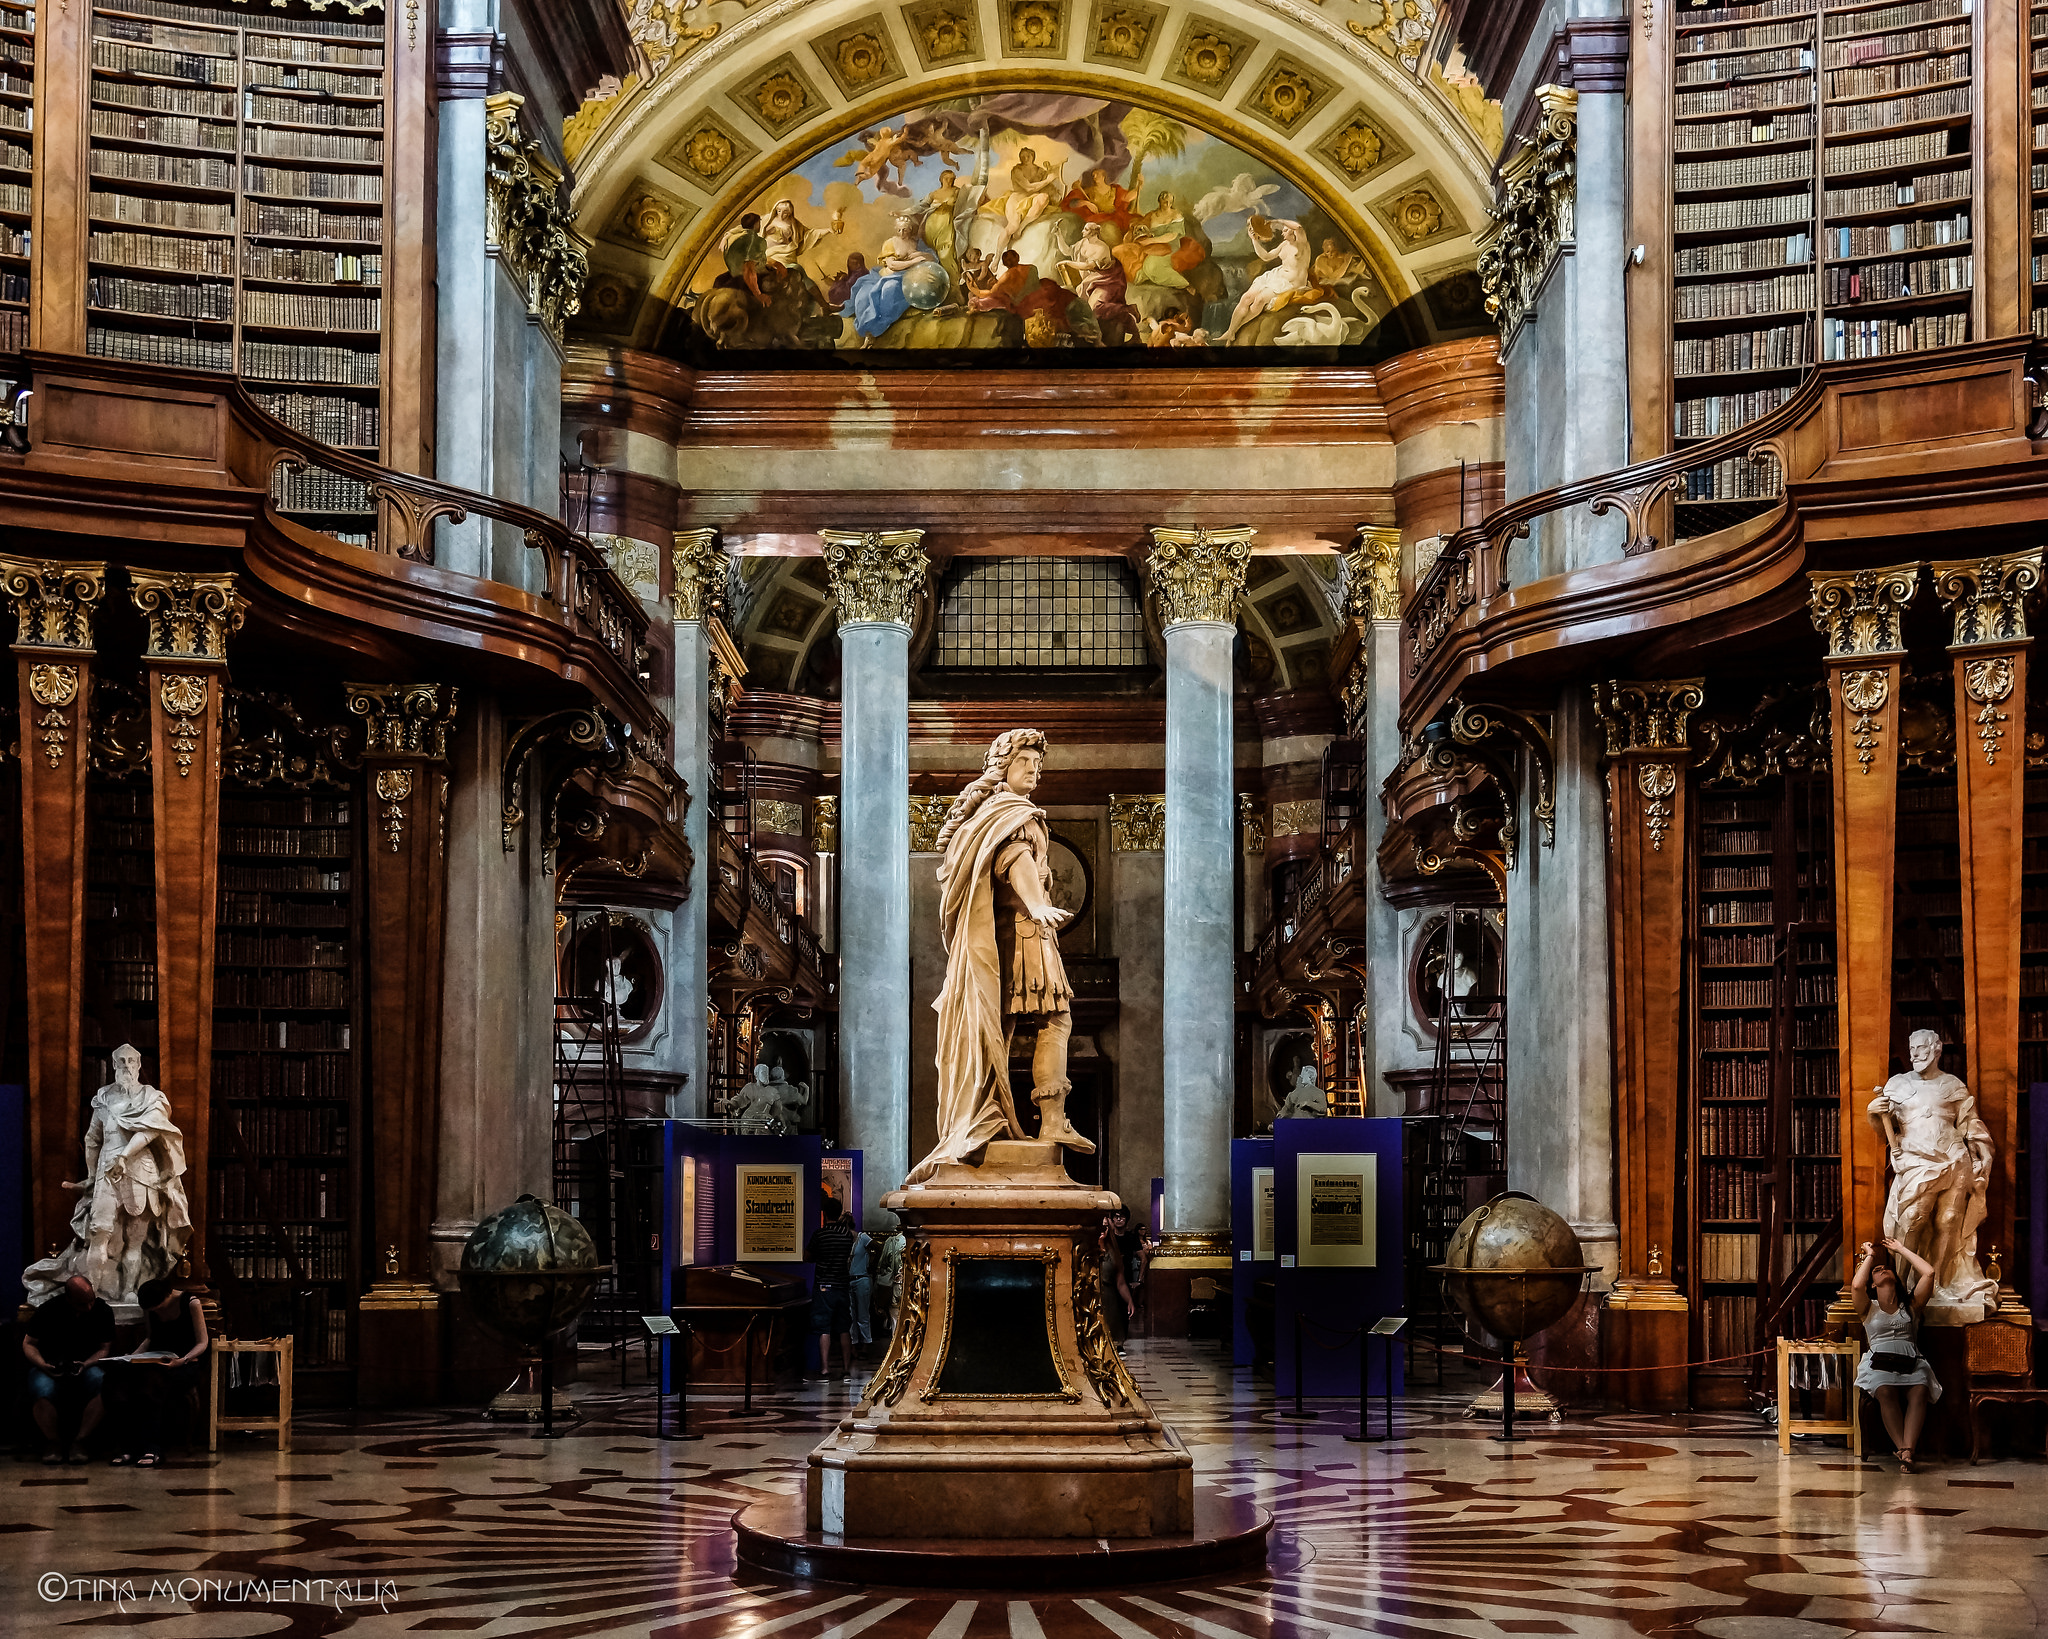 An Imperial Library That Continues To Inspire Awe